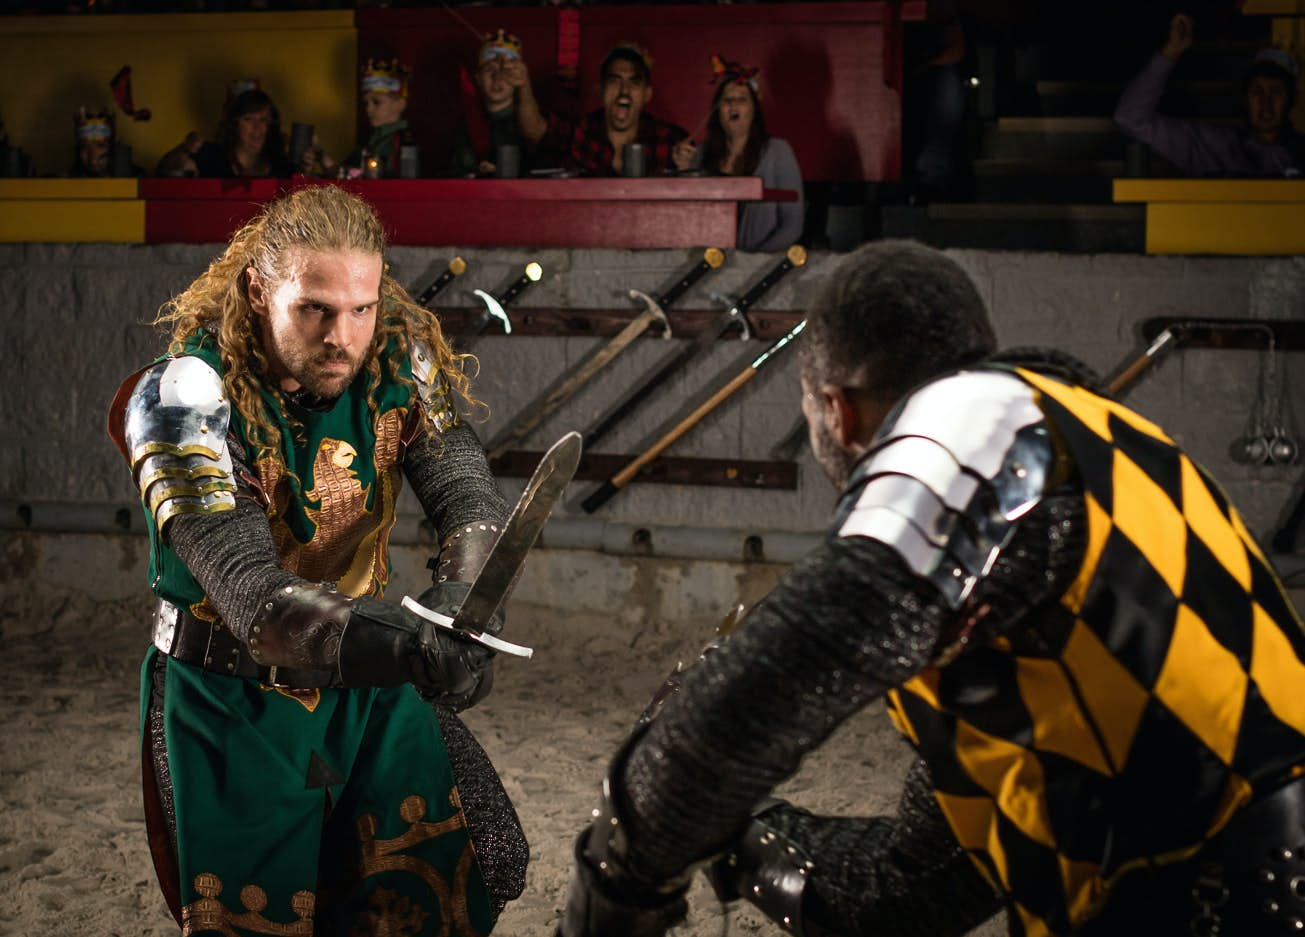 The Green Knight holding his sword out during a live Medieval Times show.